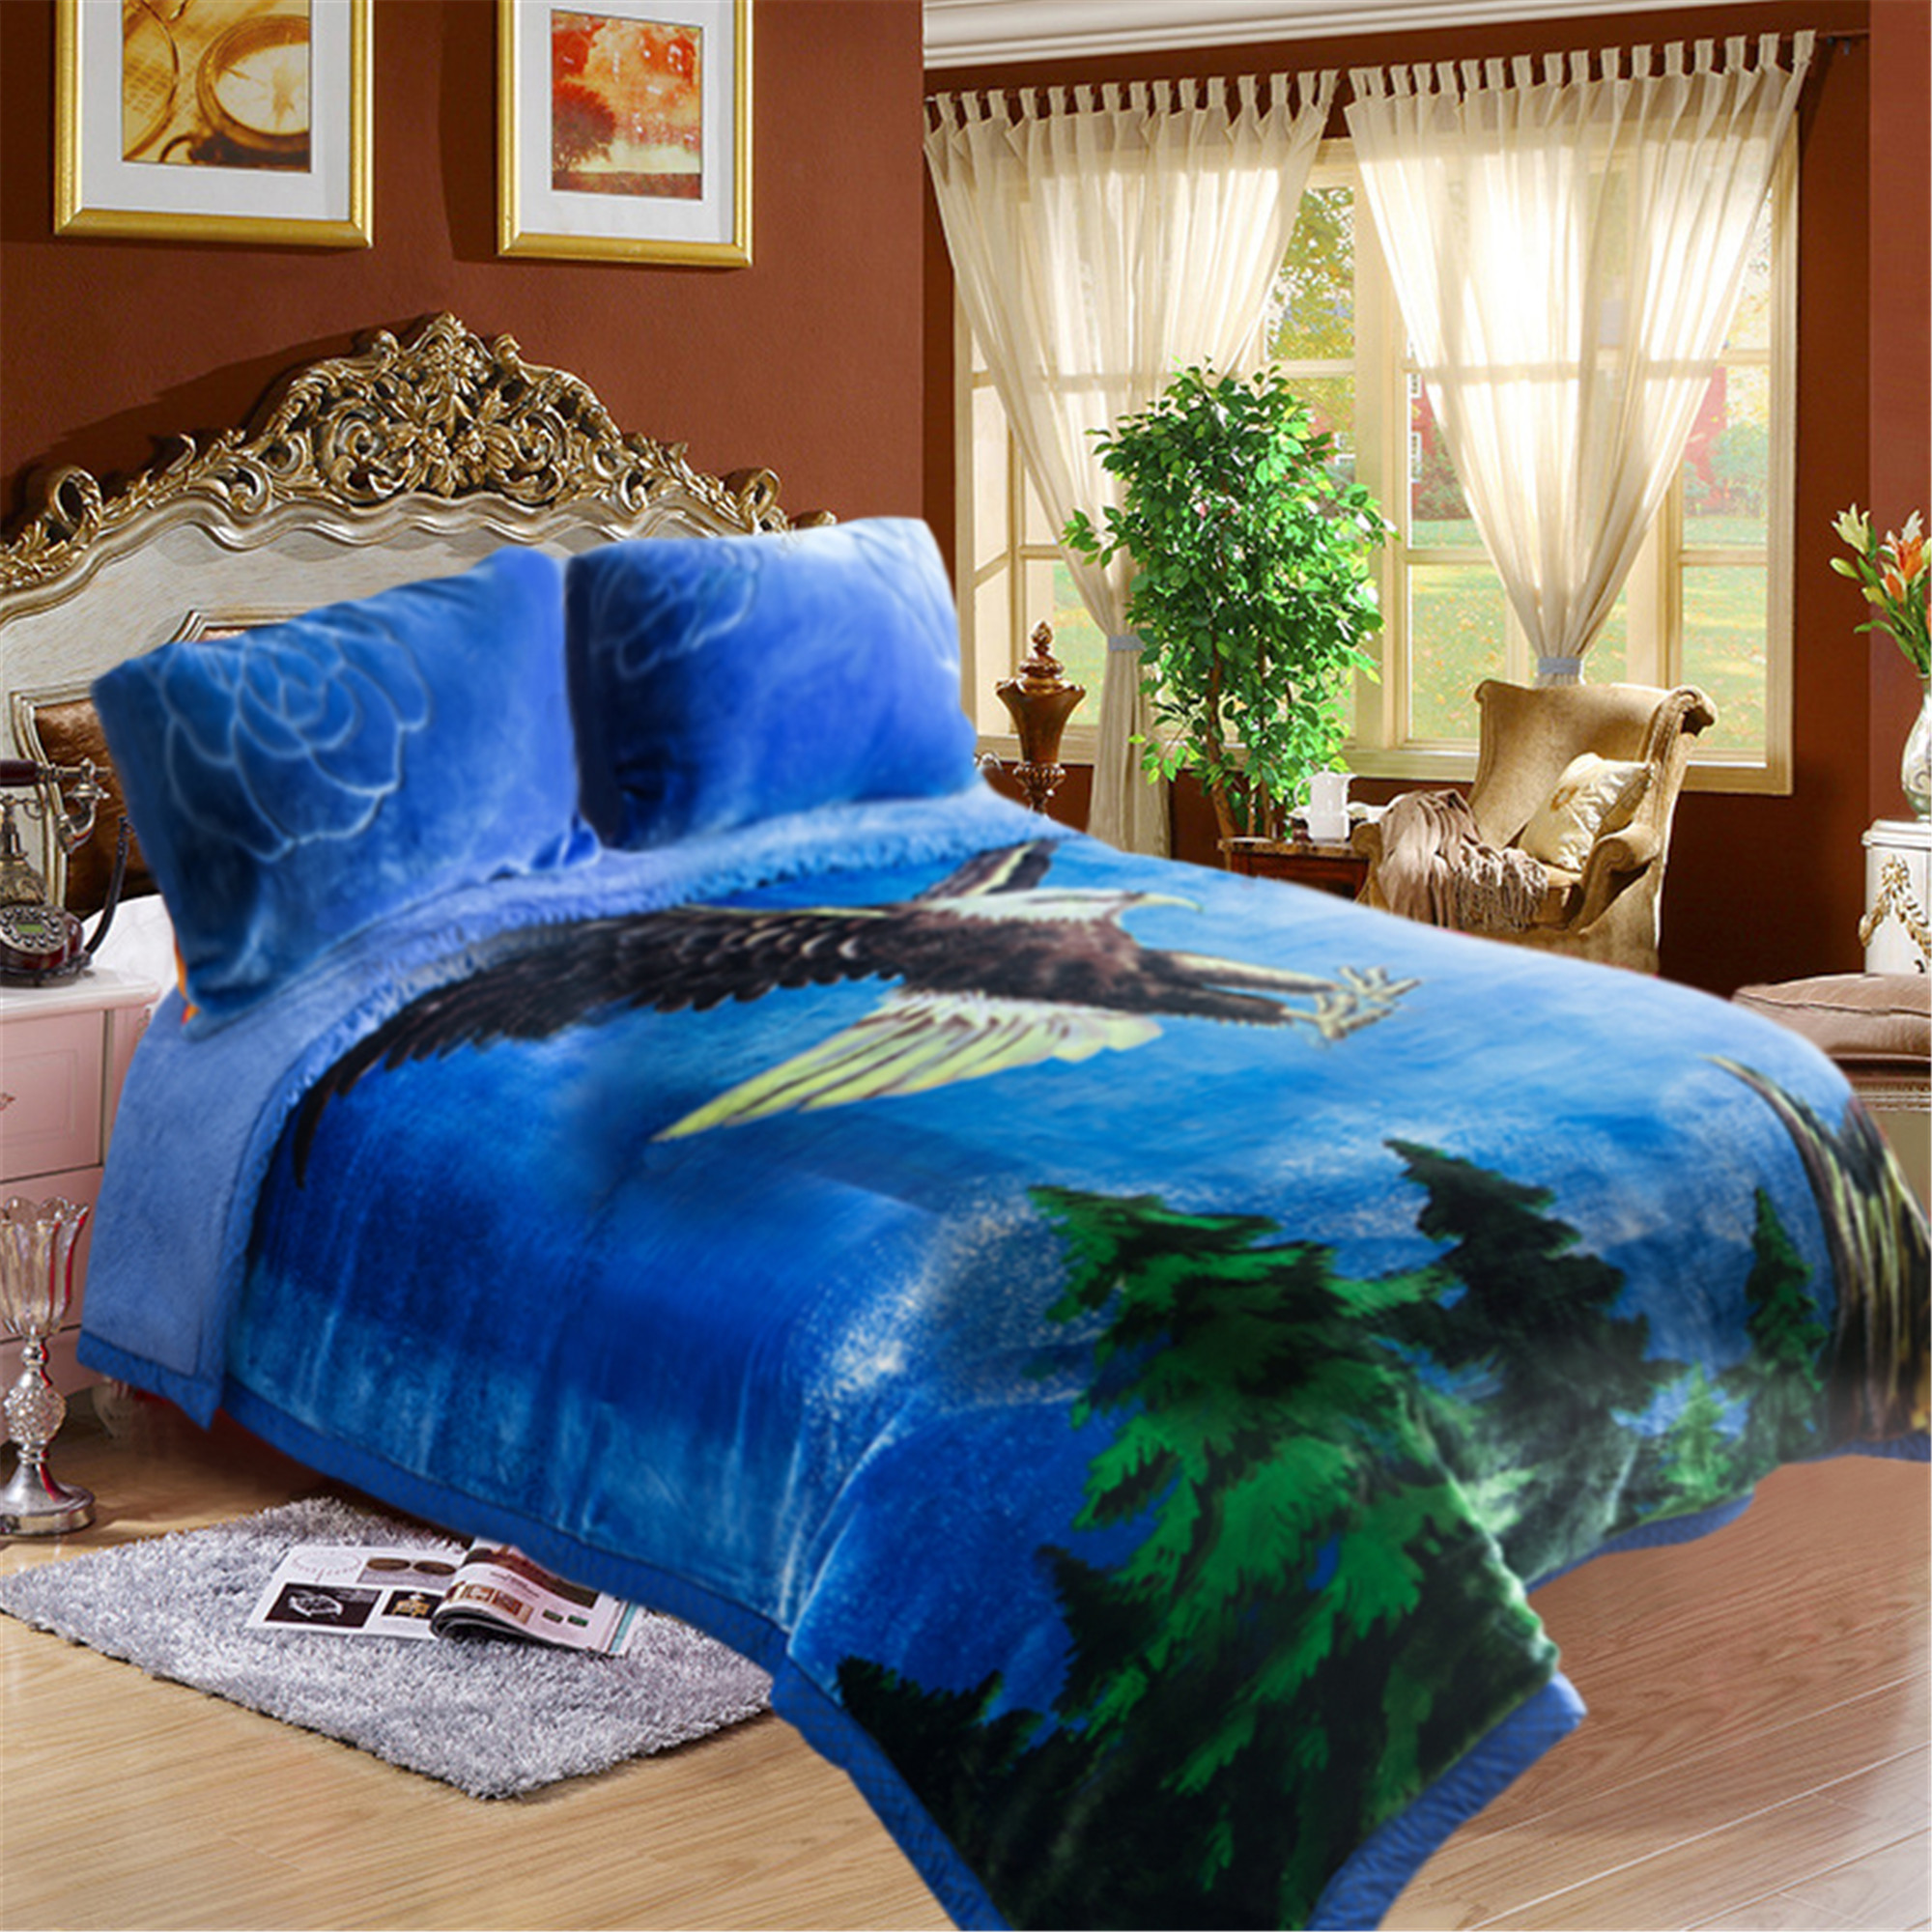 "Heavy Soft Plush Warm Blanket Mink Printed 3 Piece Bedspread For Winter 85""x93"" Blue Eagle Printed"